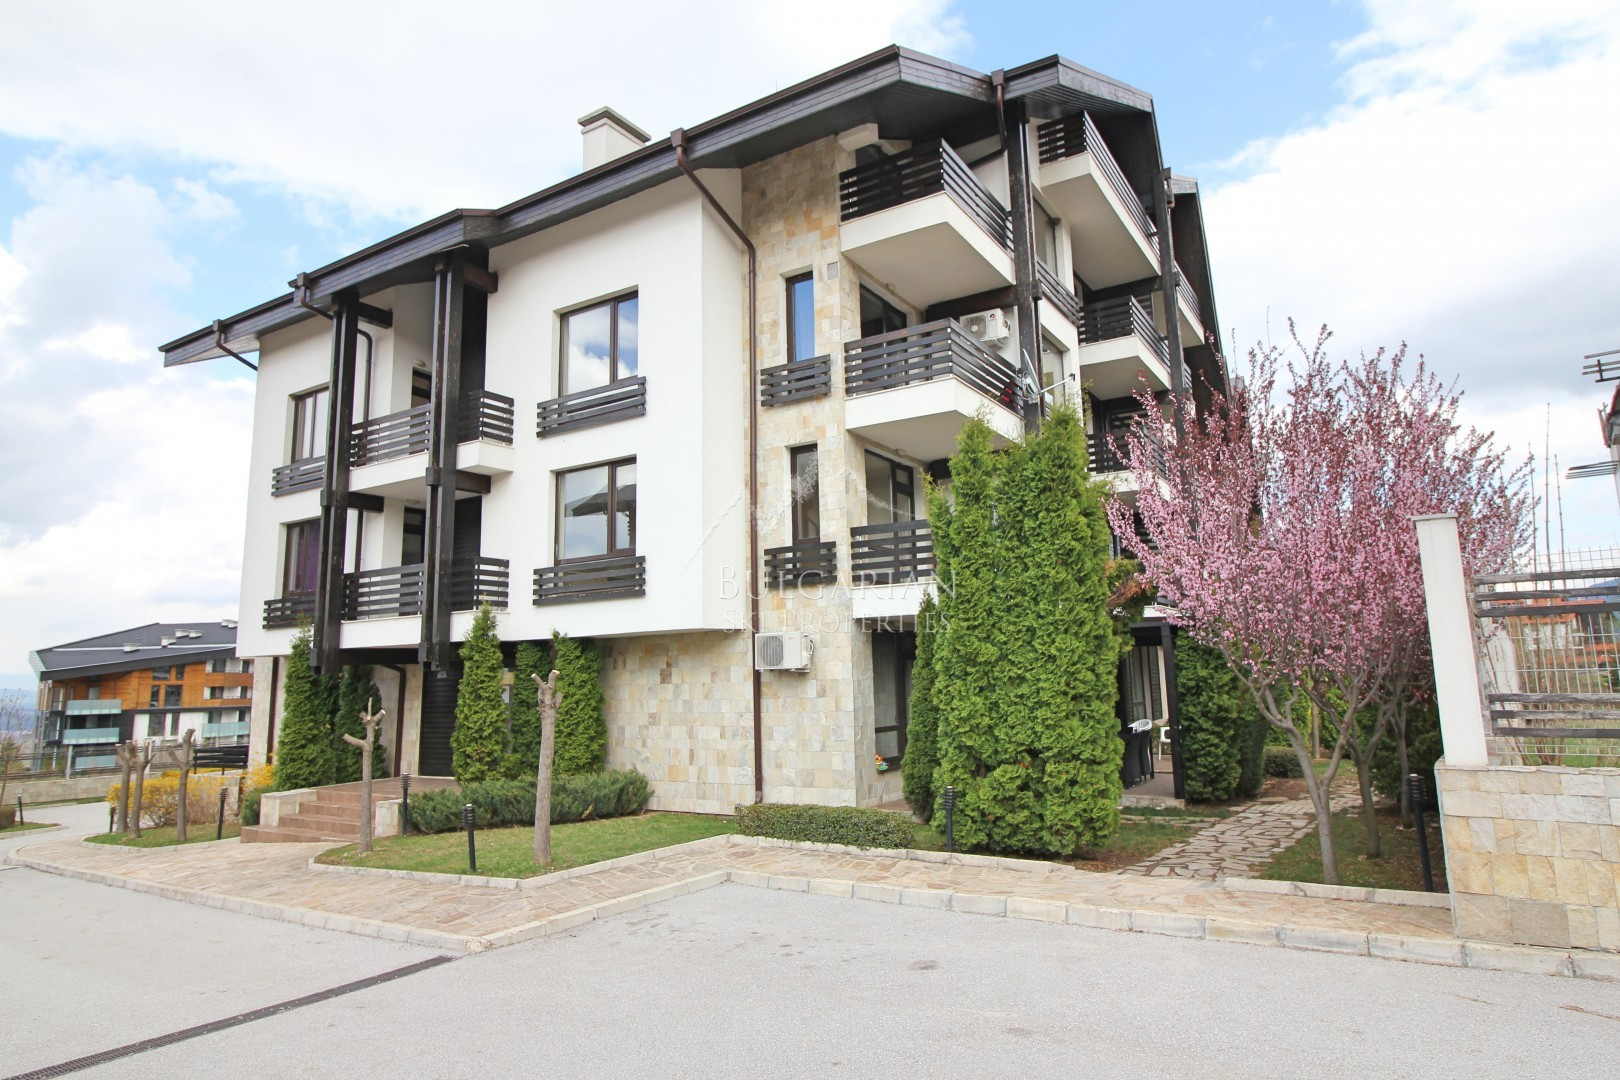 Aspen Suites, Bansko: bargain studio for sale